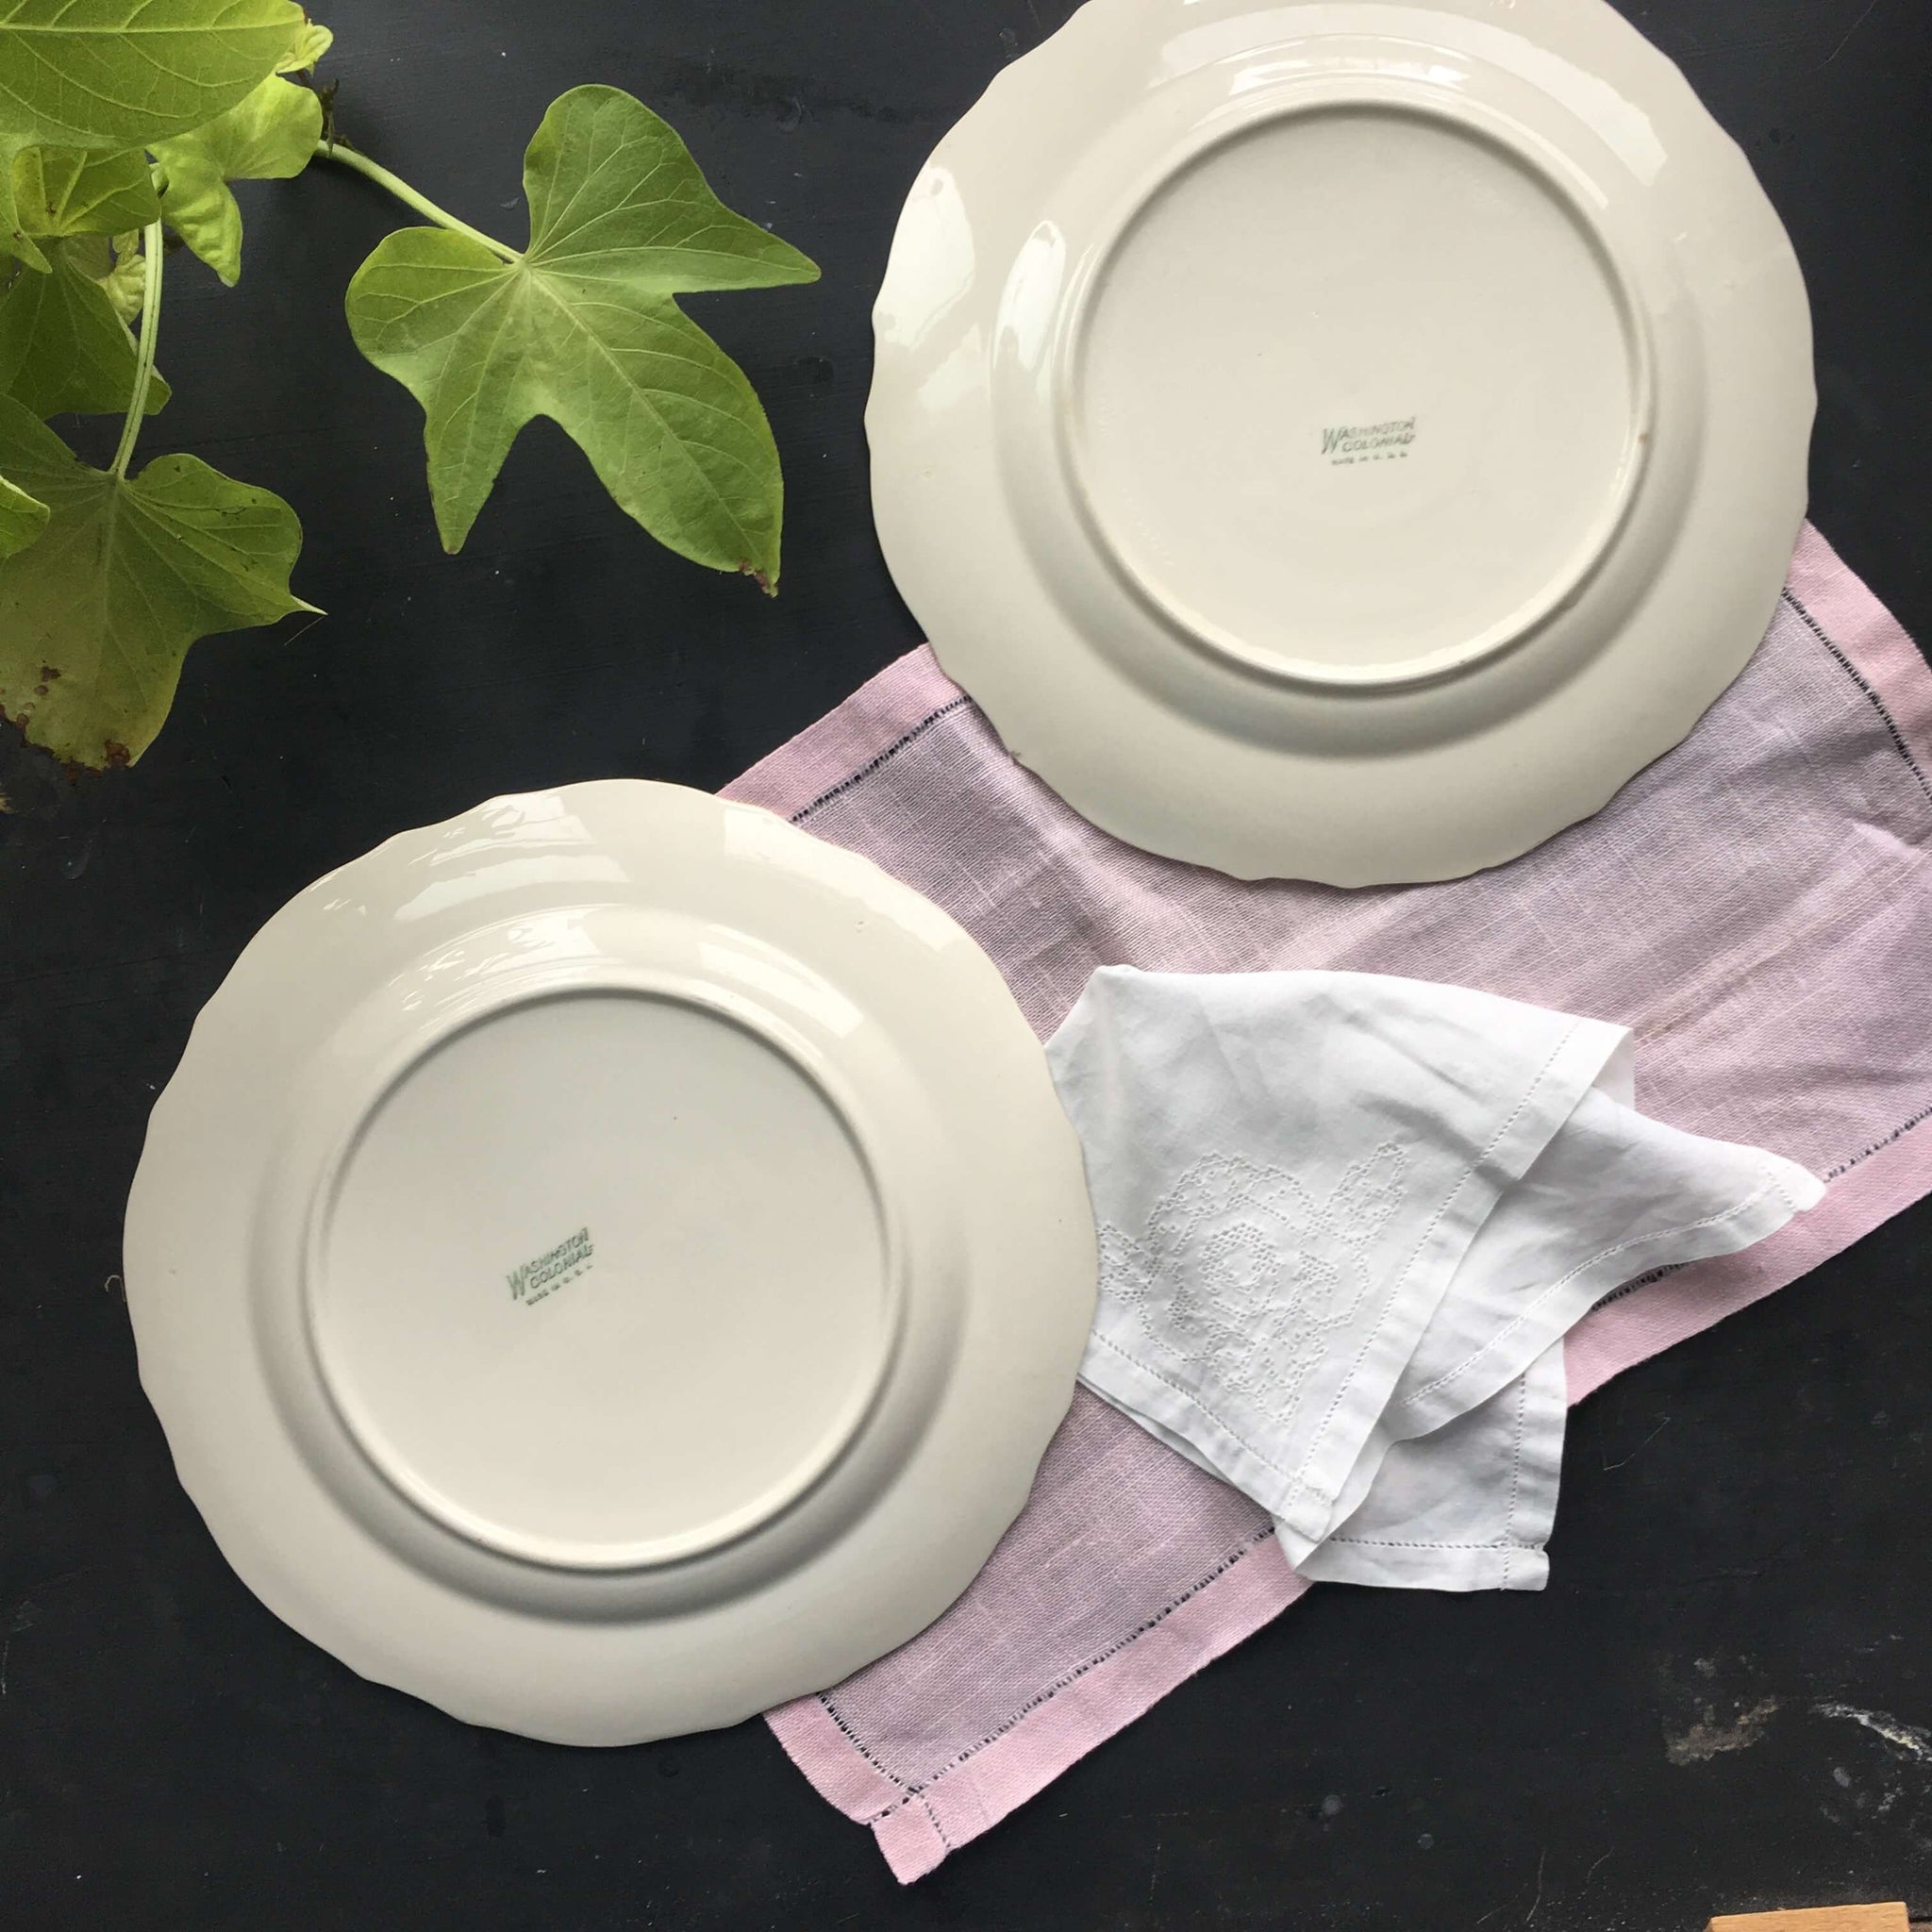 Vintage 1940s June Rose Dinner Plates - Washington Colonial by Vogue - Set of Two - Pink Rose